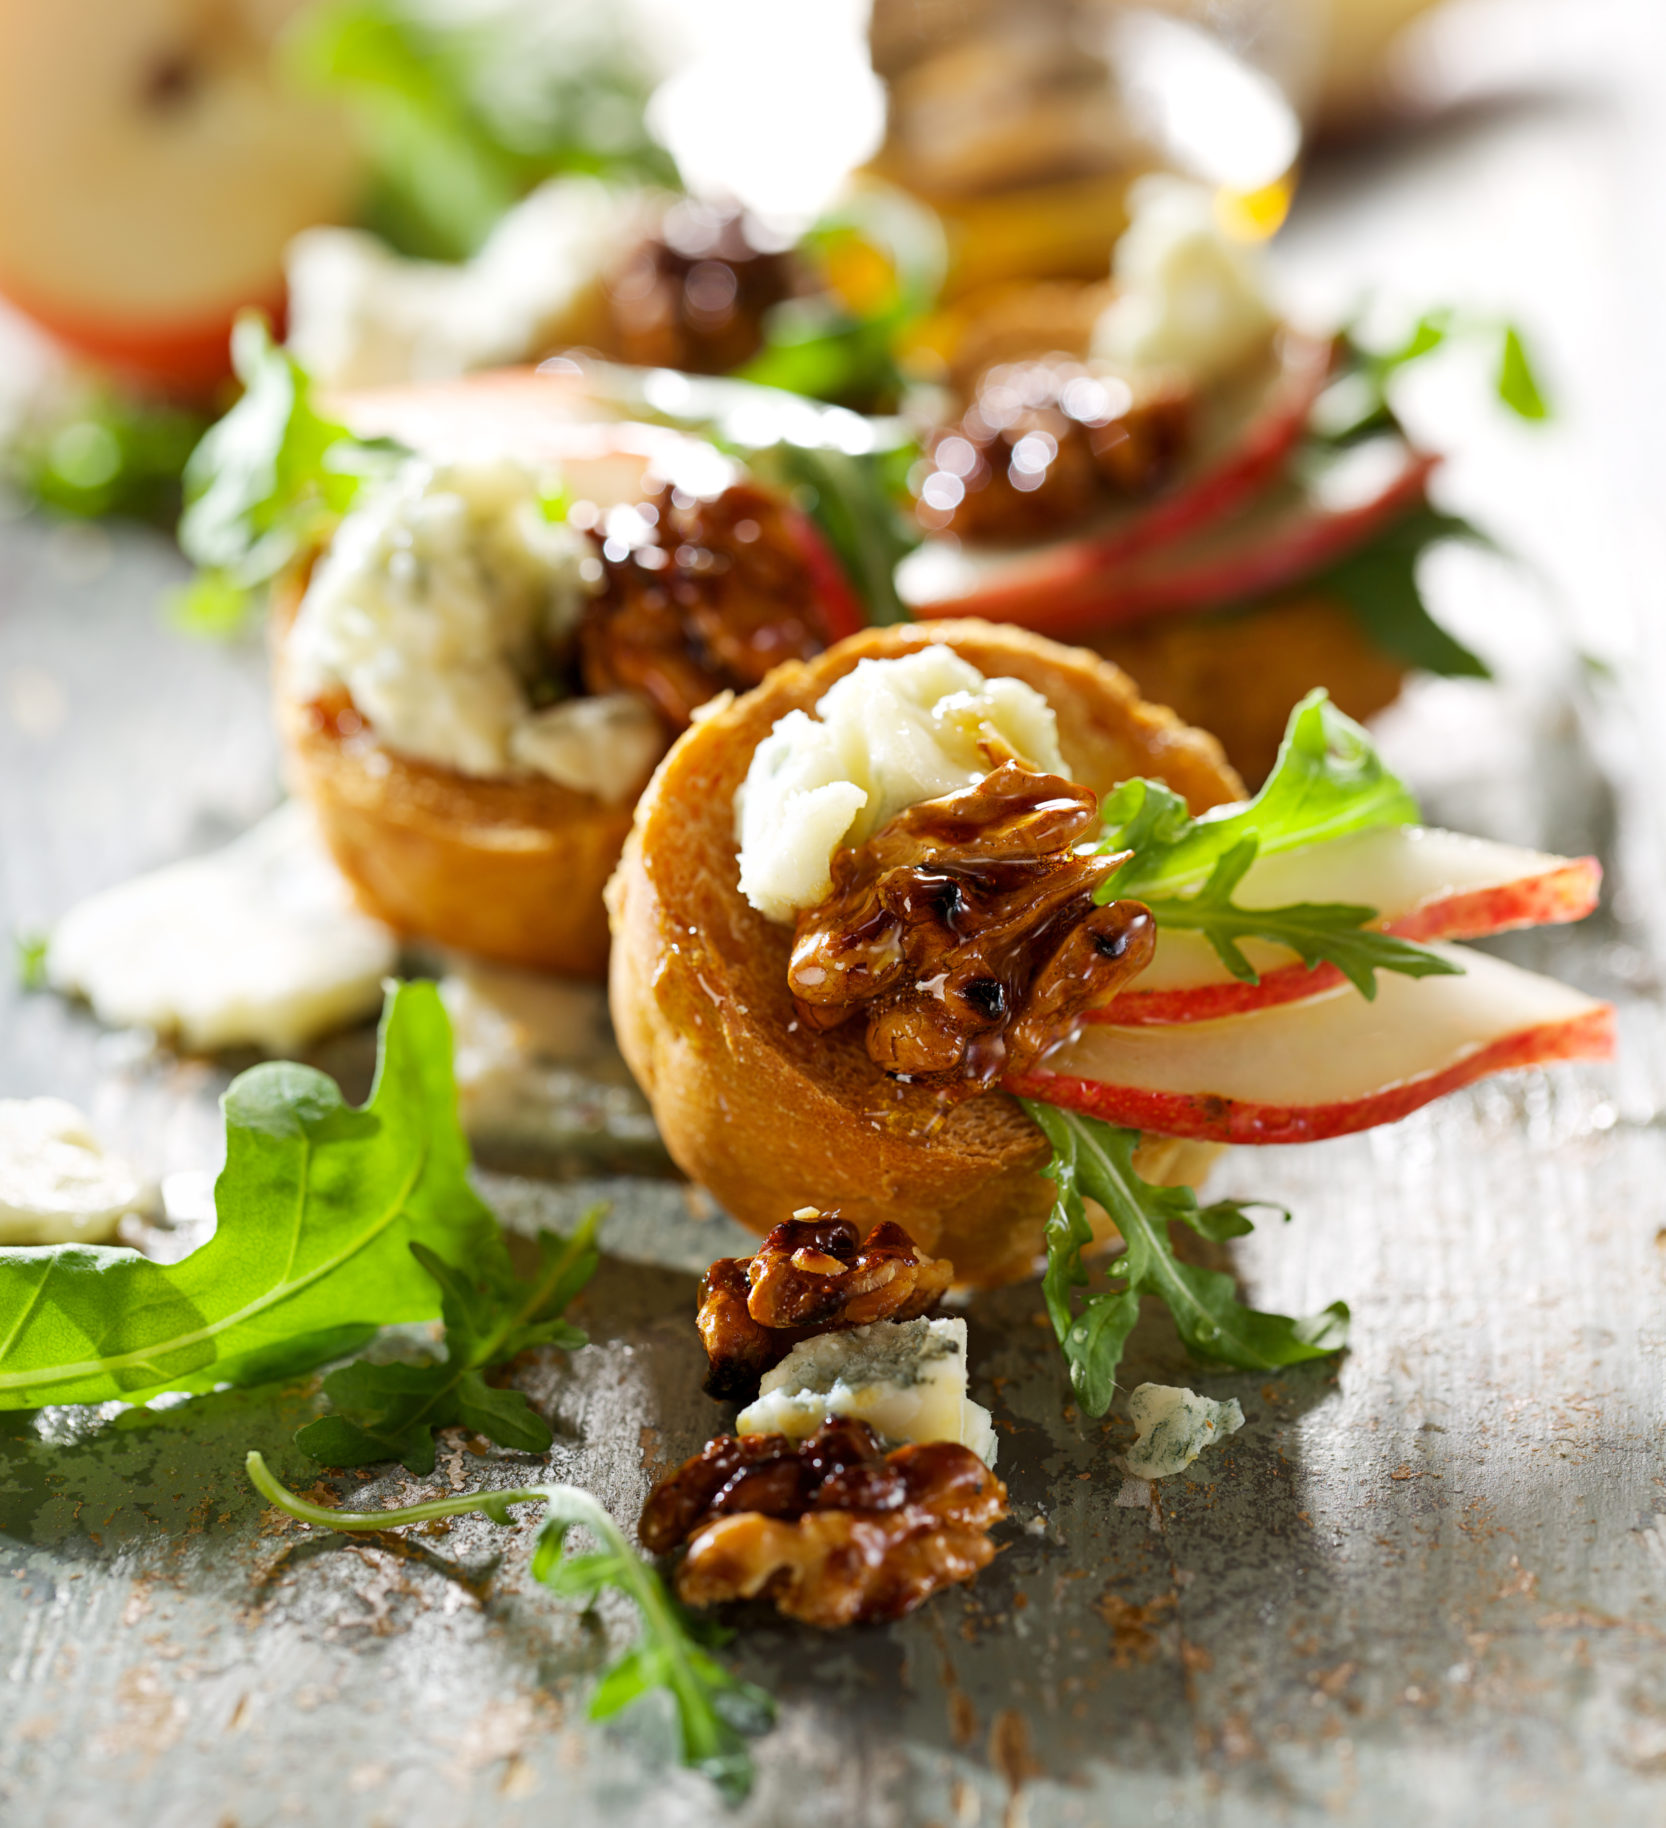 Blue cheese and caramel walnut salad chef tjaart for Blue cheese canape